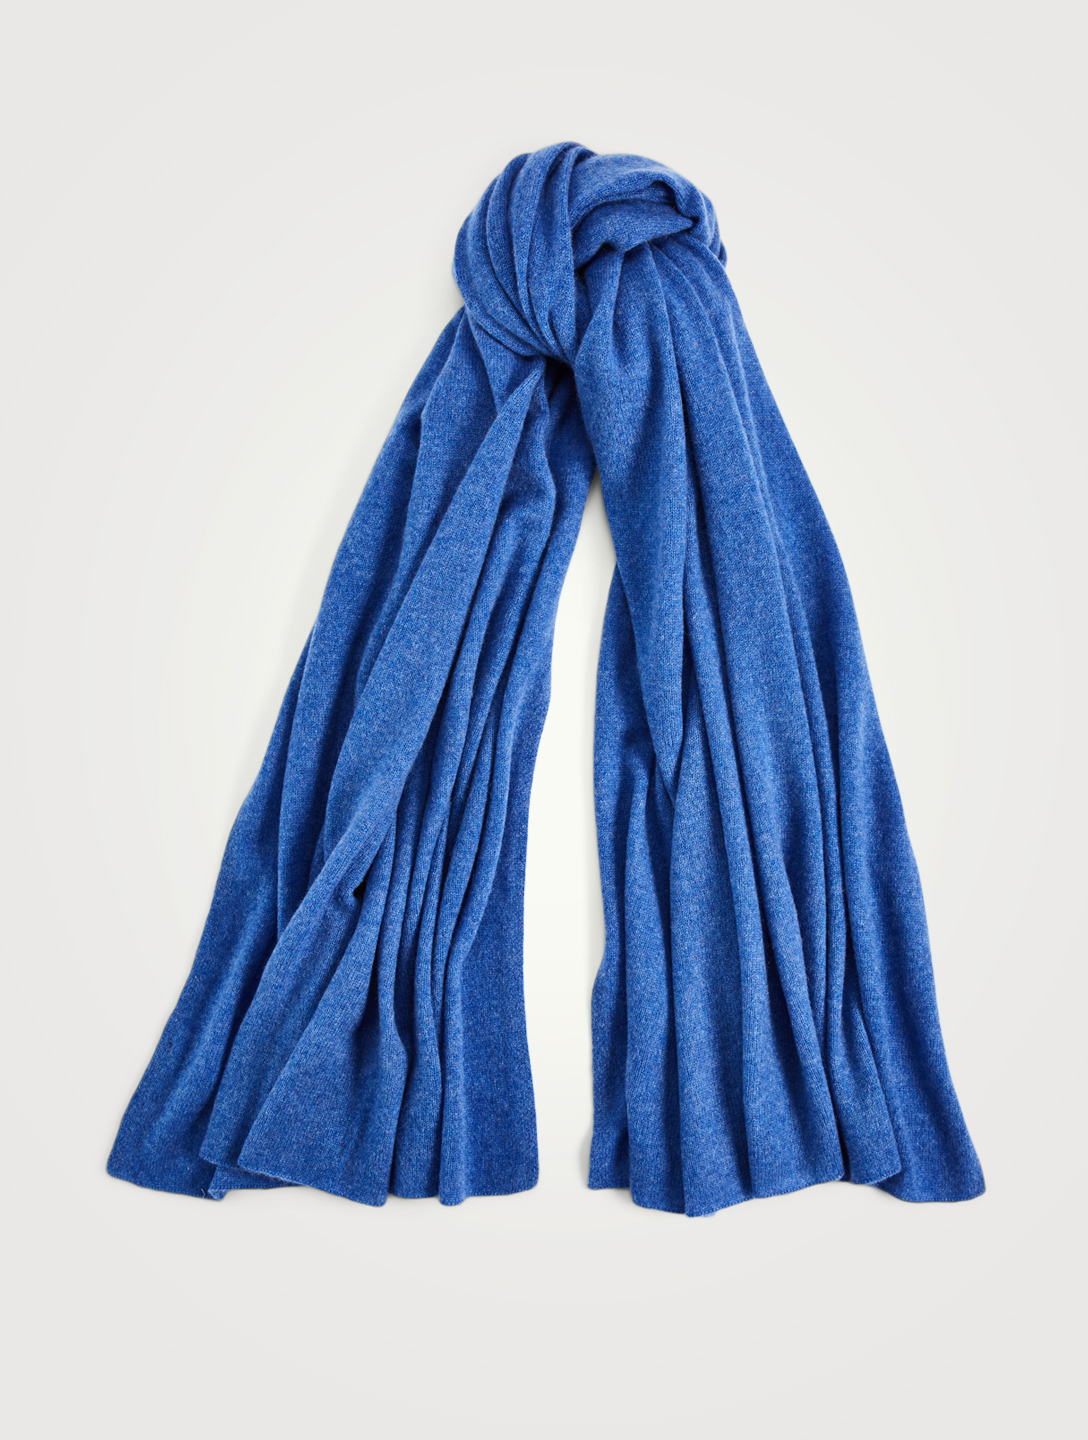 WHITE & WARREN Cashmere Travel Scarf Womens Blue